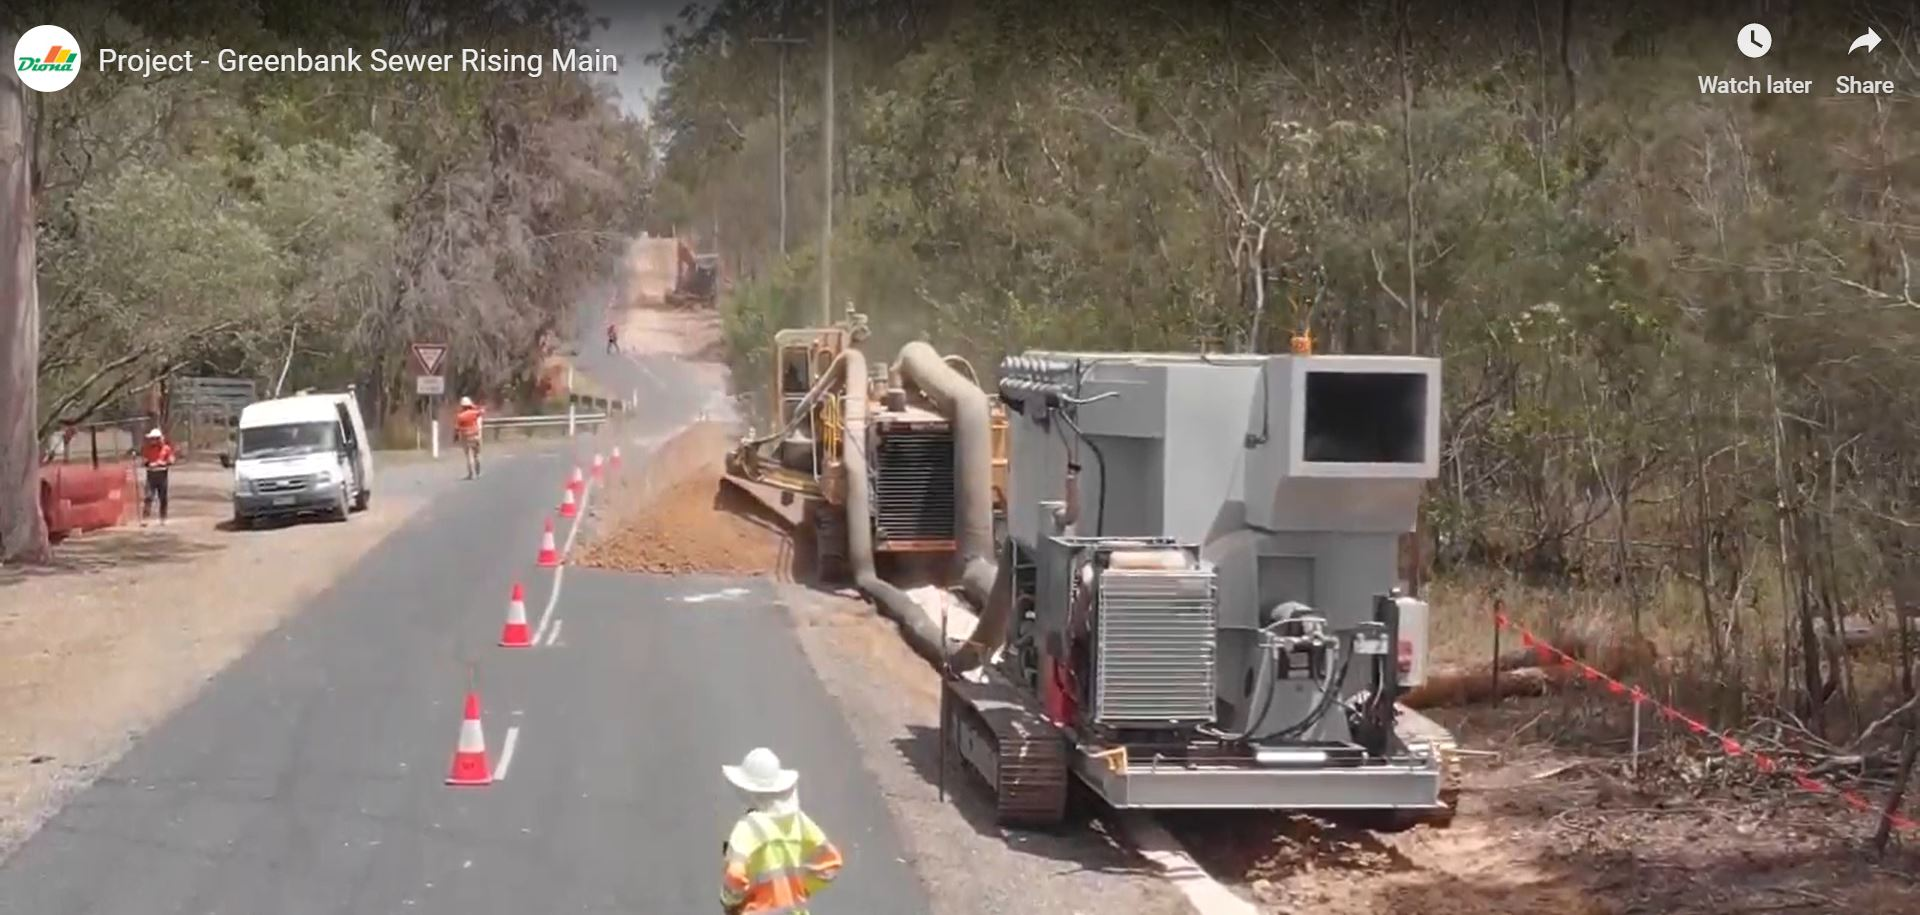 Mobile Diesel Track Dust Collector working alongside trencher